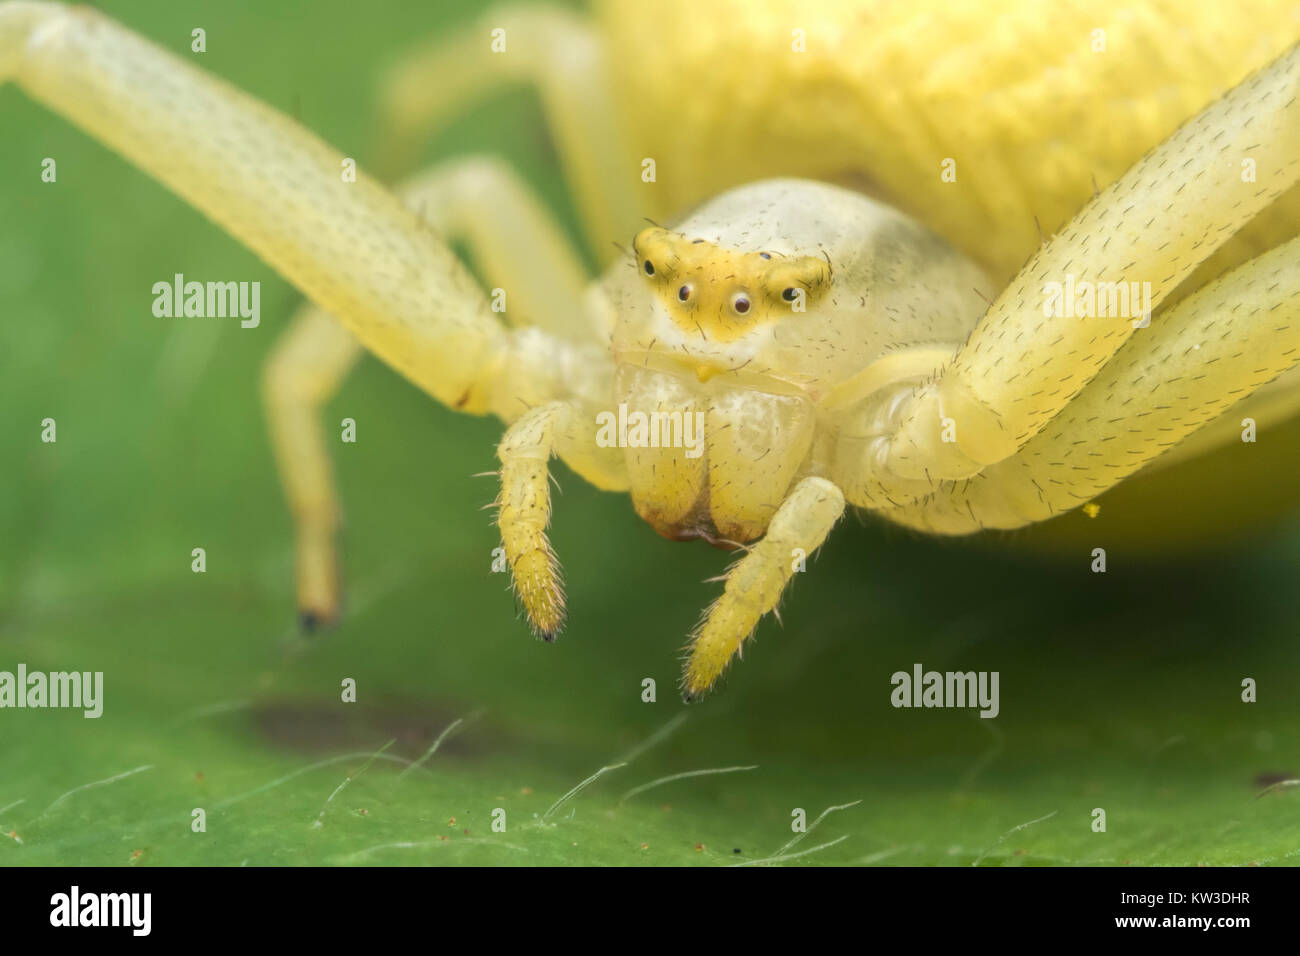 Crab Spider (Misumena vatia) close up macro photo of its head. Thurles, Tipperary, Ireland. - Stock Image